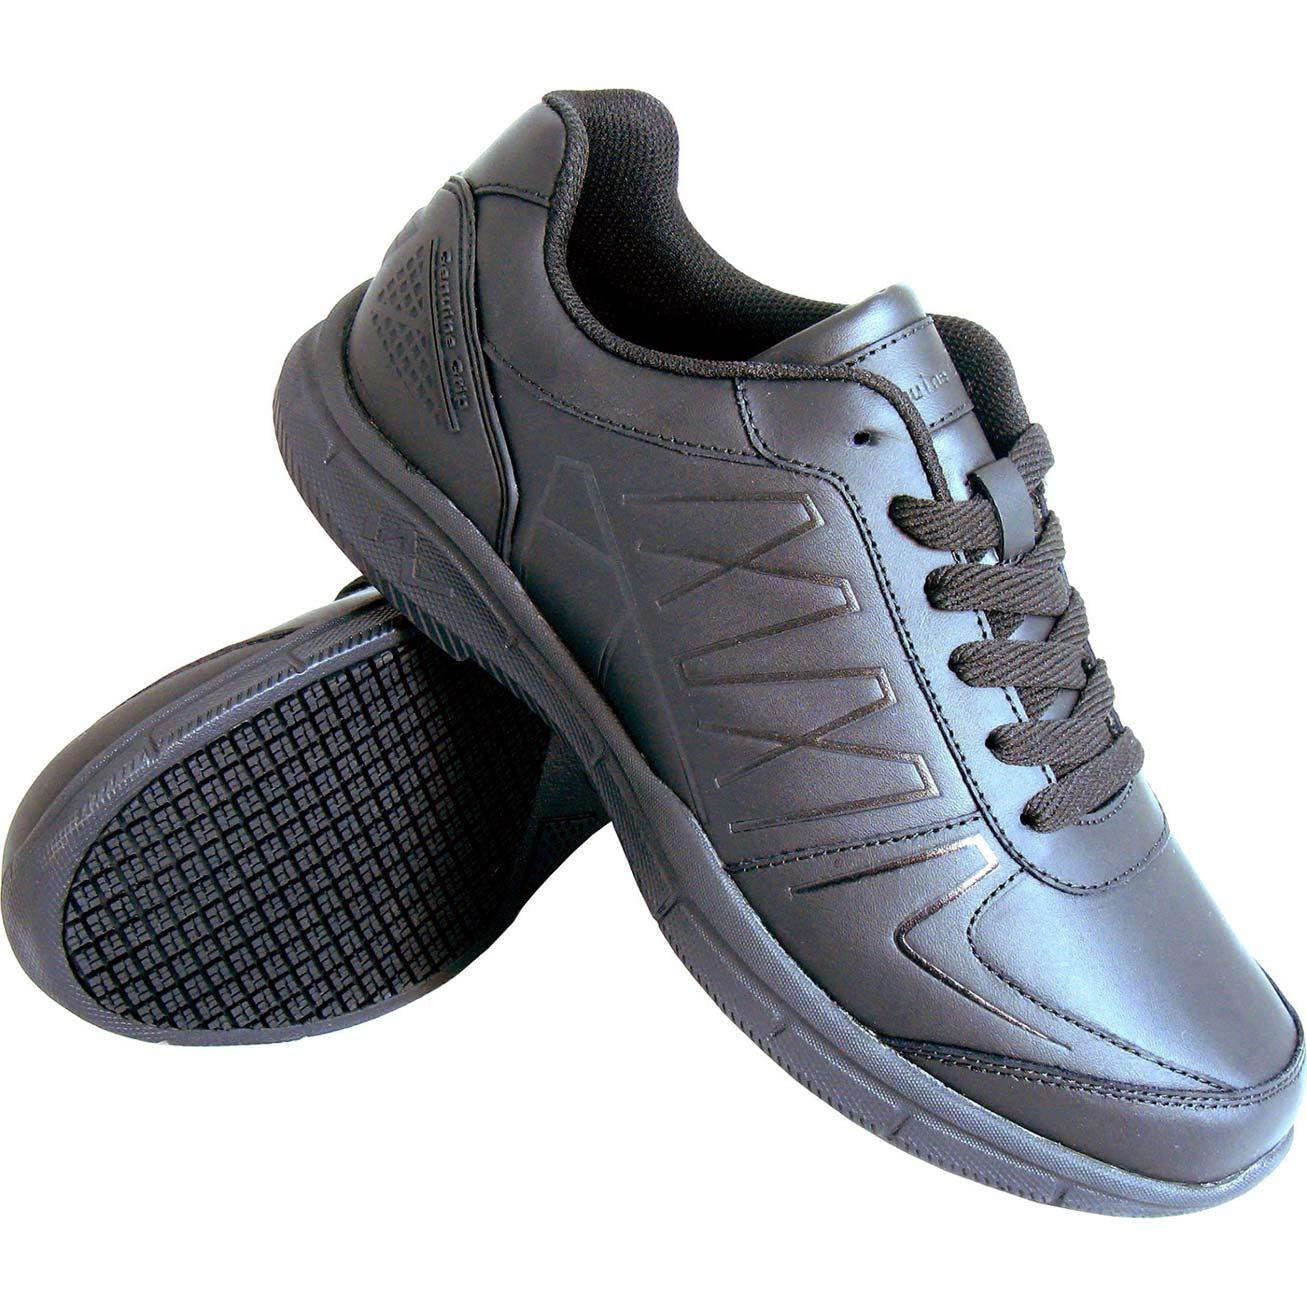 Genuine Grip Slip-Resistant Athletic Shoe, GG1600